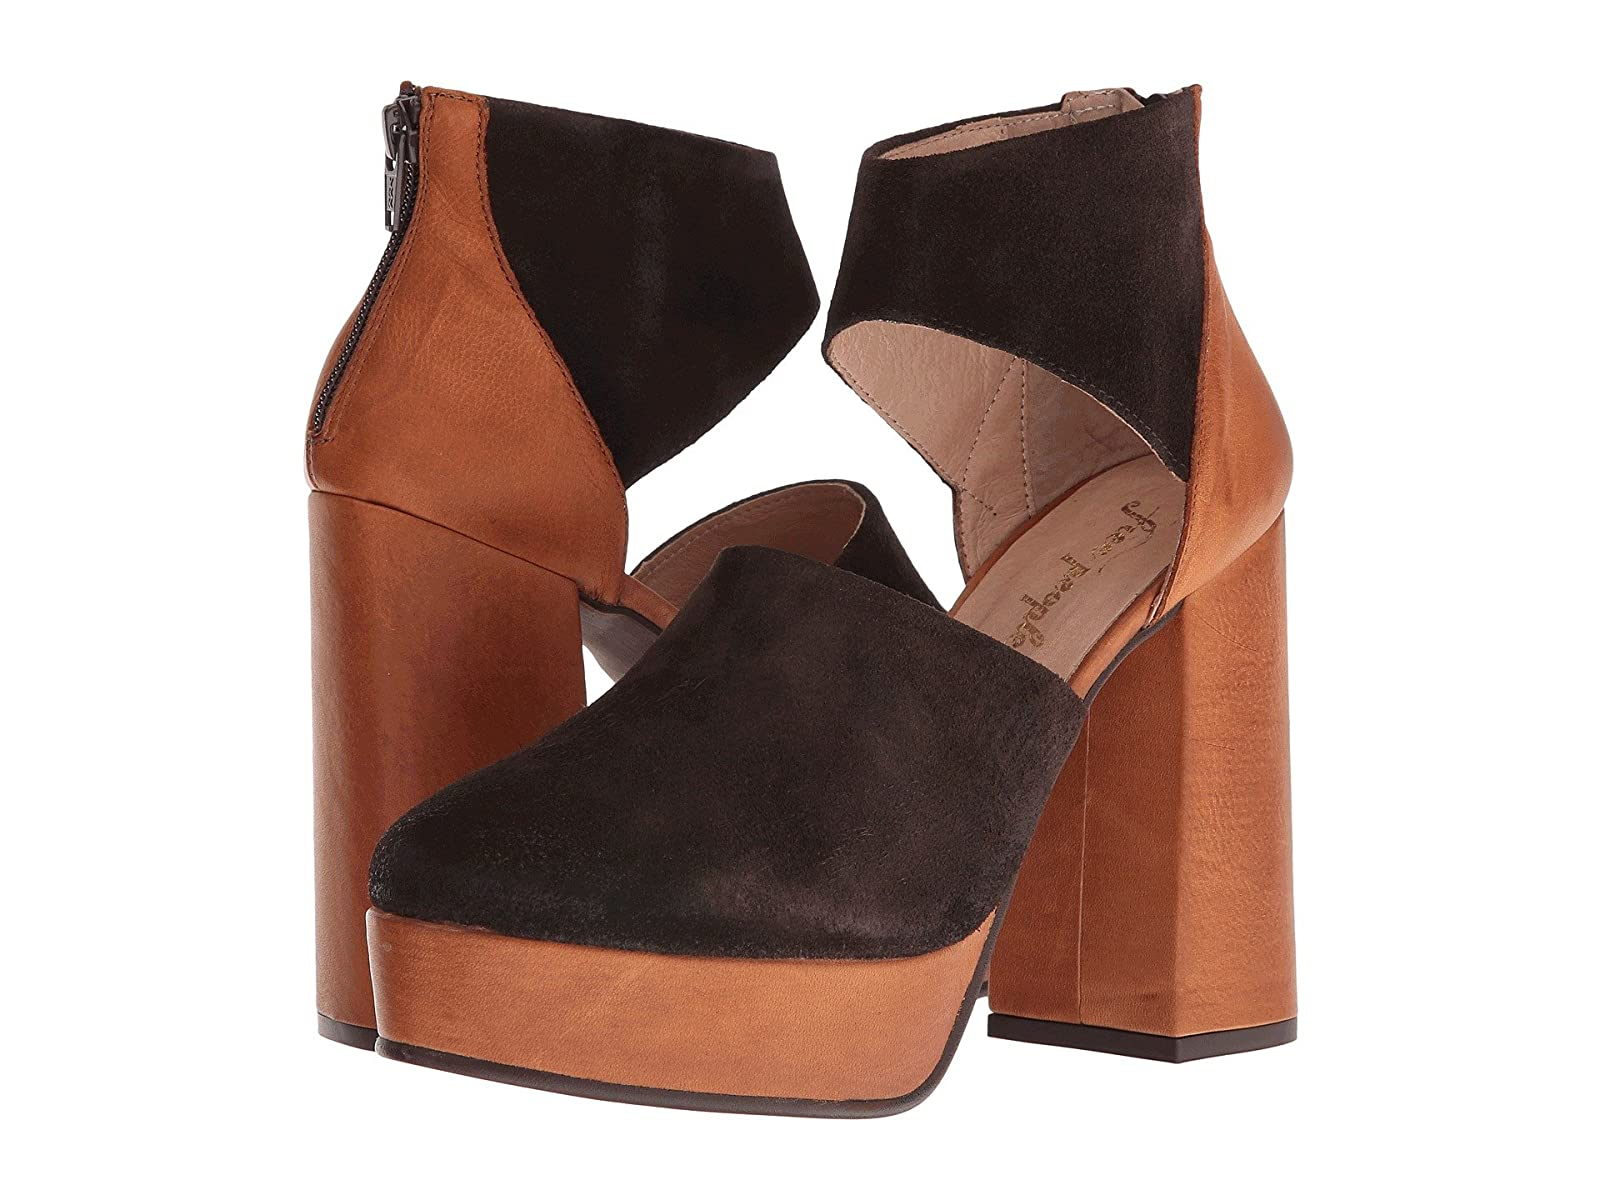 Free People Luxop PlatformCheap and distinctive eye-catching shoes